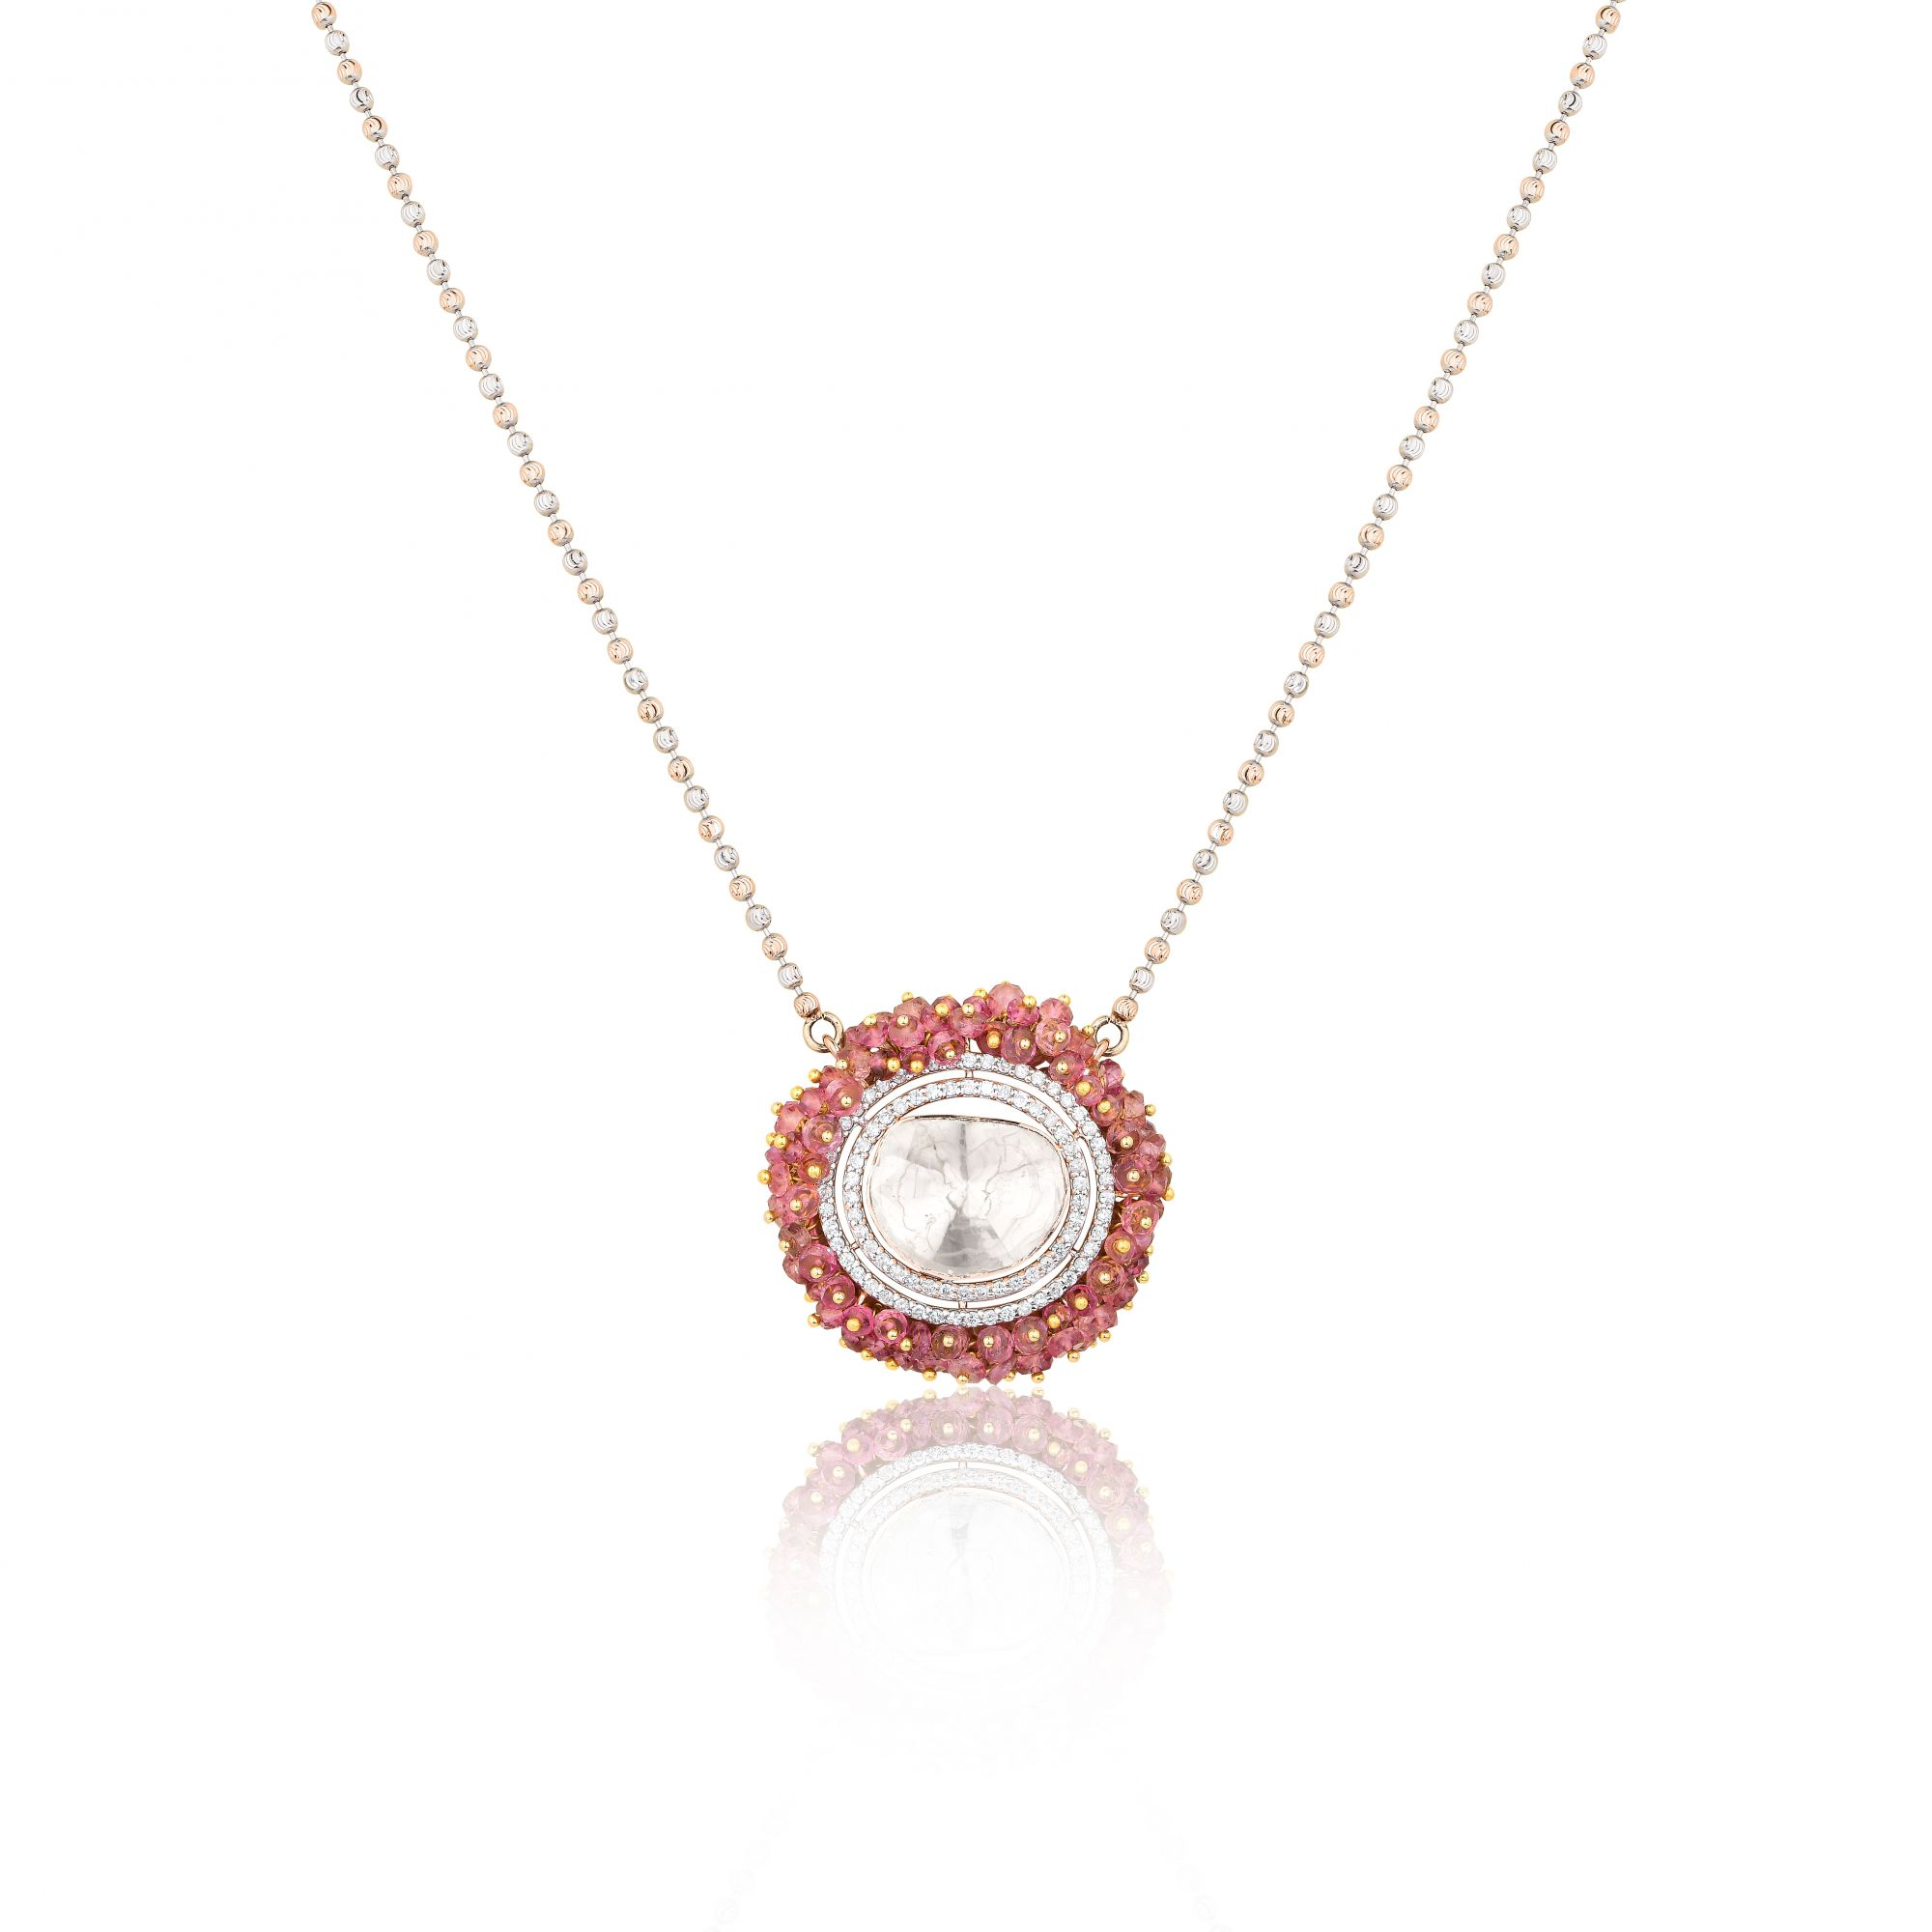 CLUSTER OF HAPPINESS PENDANT CHAIN